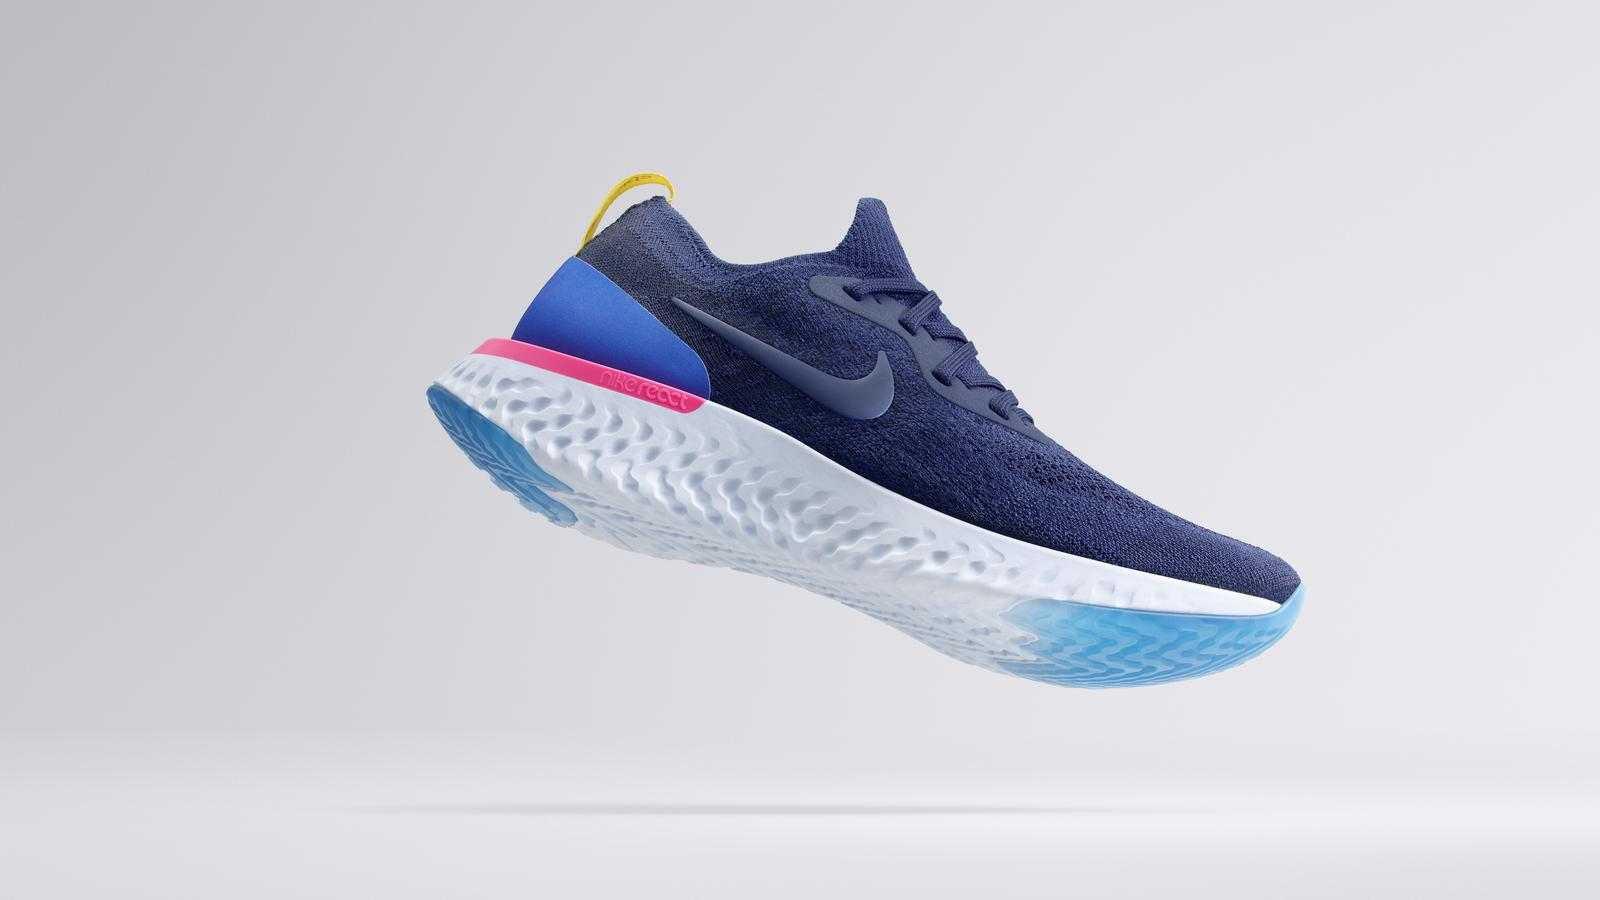 3e124dcefd07 Meet the Nike Epic React Flyknit - Nike News